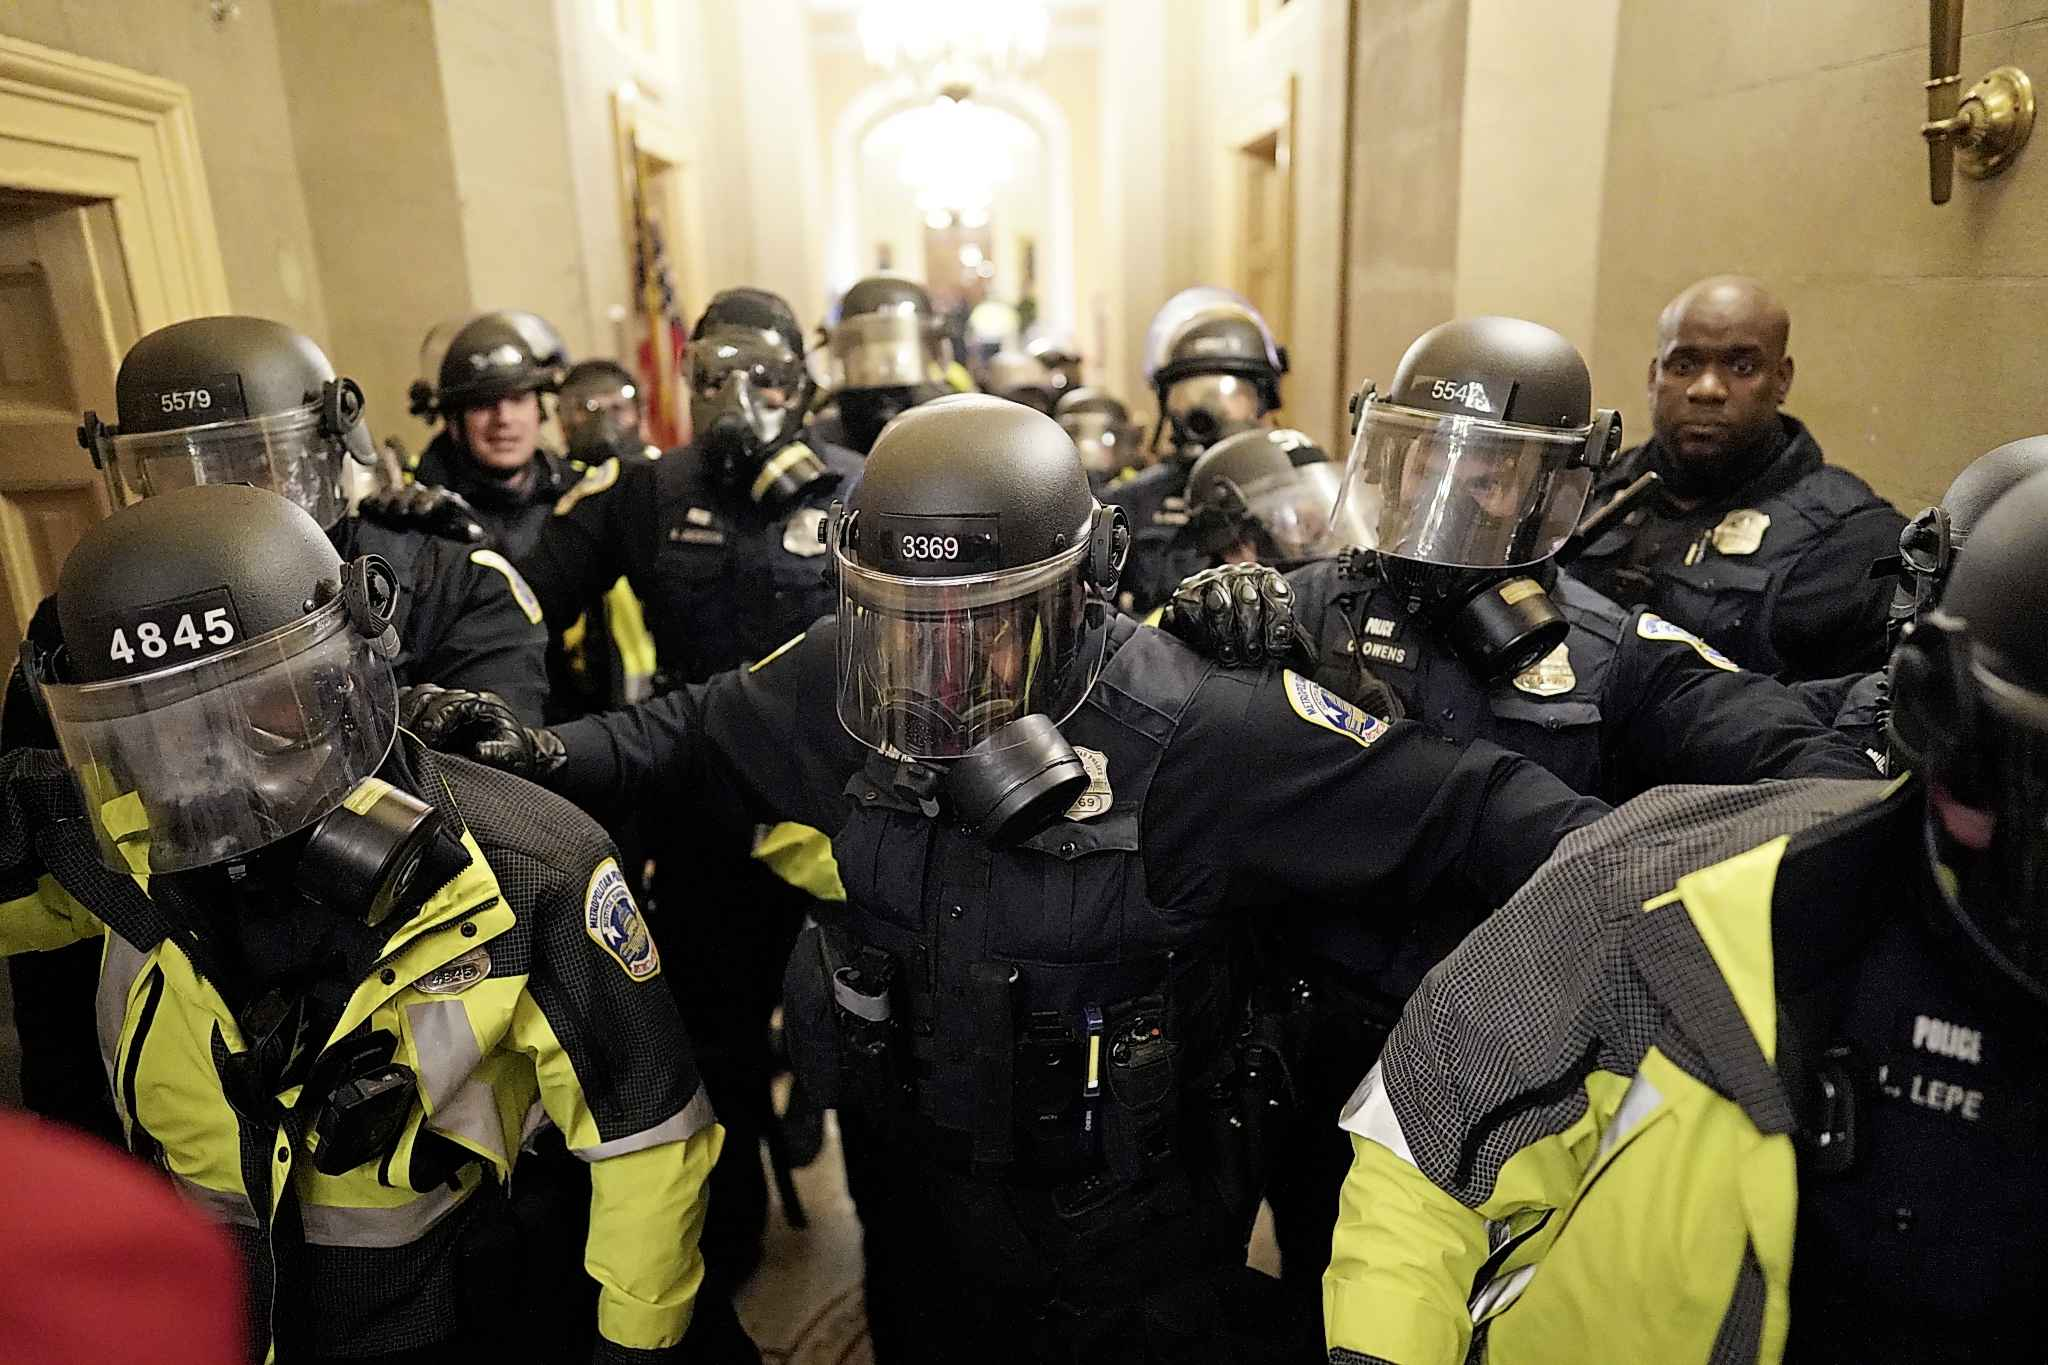 Riot police clear the hallway inside the Capitol on Wednesday, Jan. 6, 2021 in Washington, DC. (Kent Nishimura/Los Angeles Times/TNS)